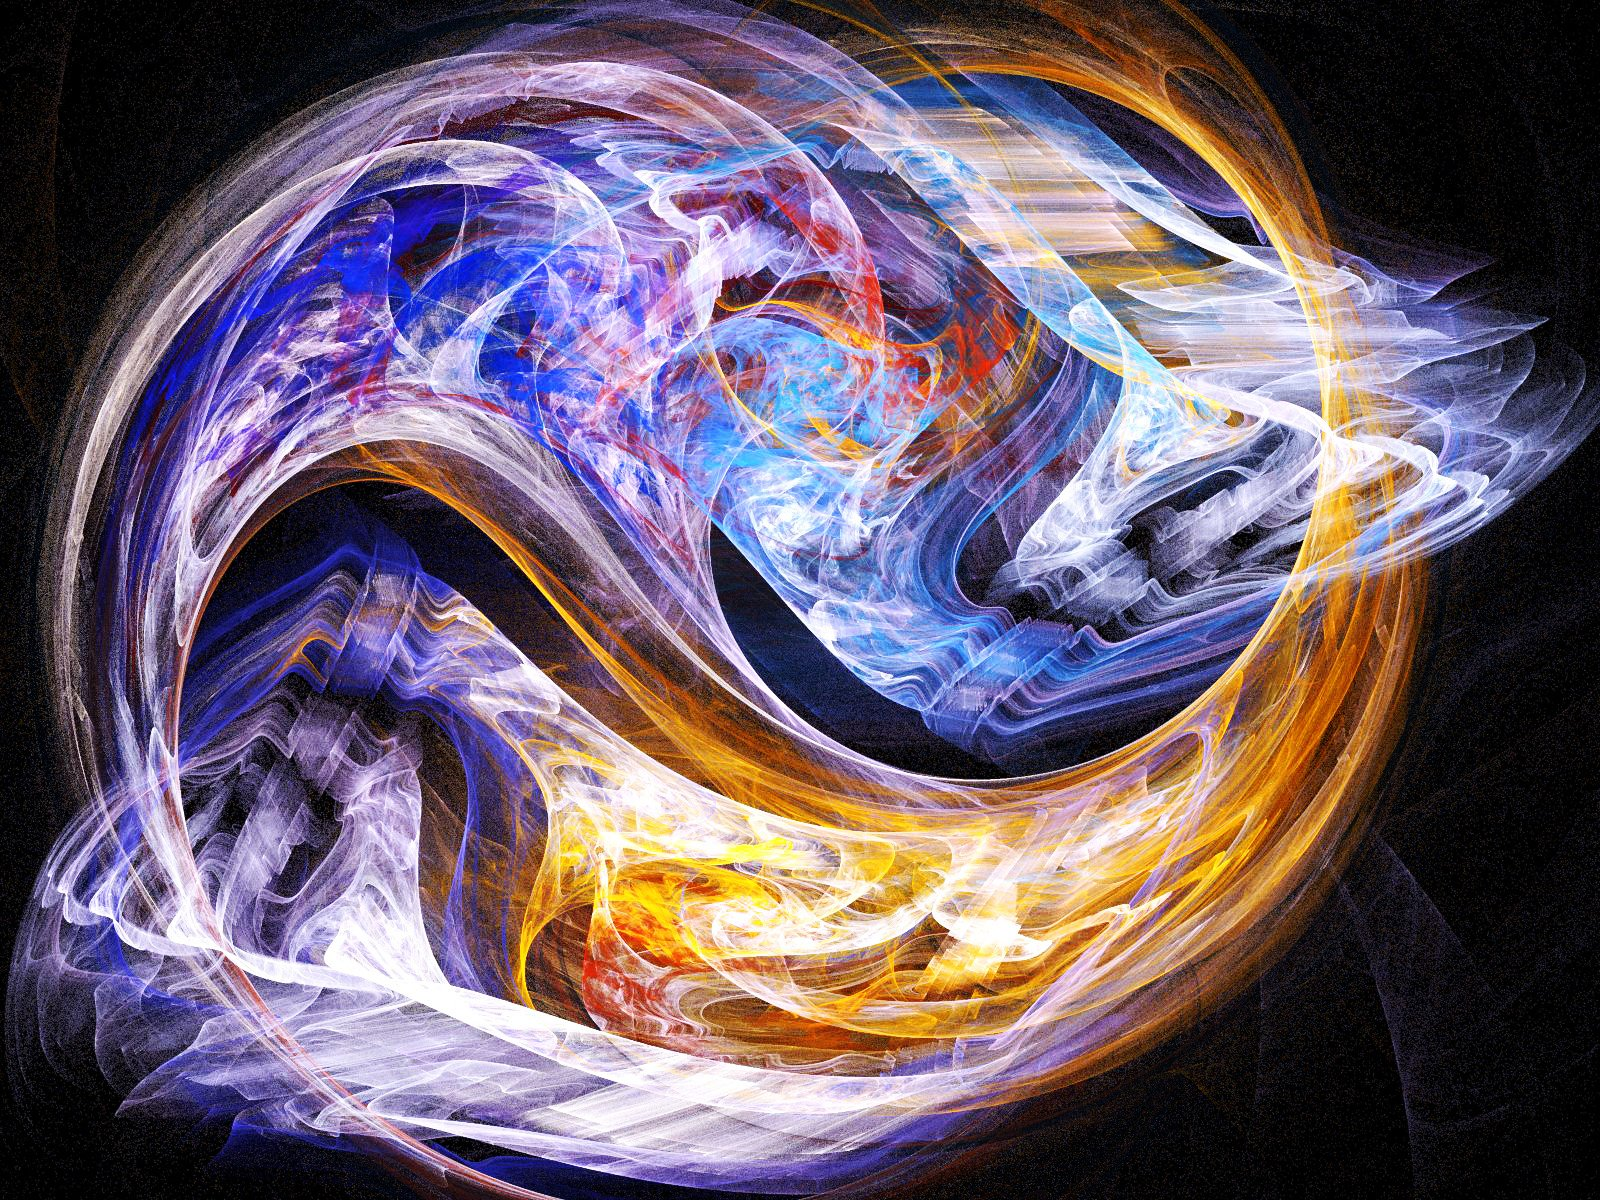 Fire and ice fractal abstract wallpaper hd wallpapers - Hd Wallpaper Background Id 429988 1600x1200 Abstract Fire And Ice